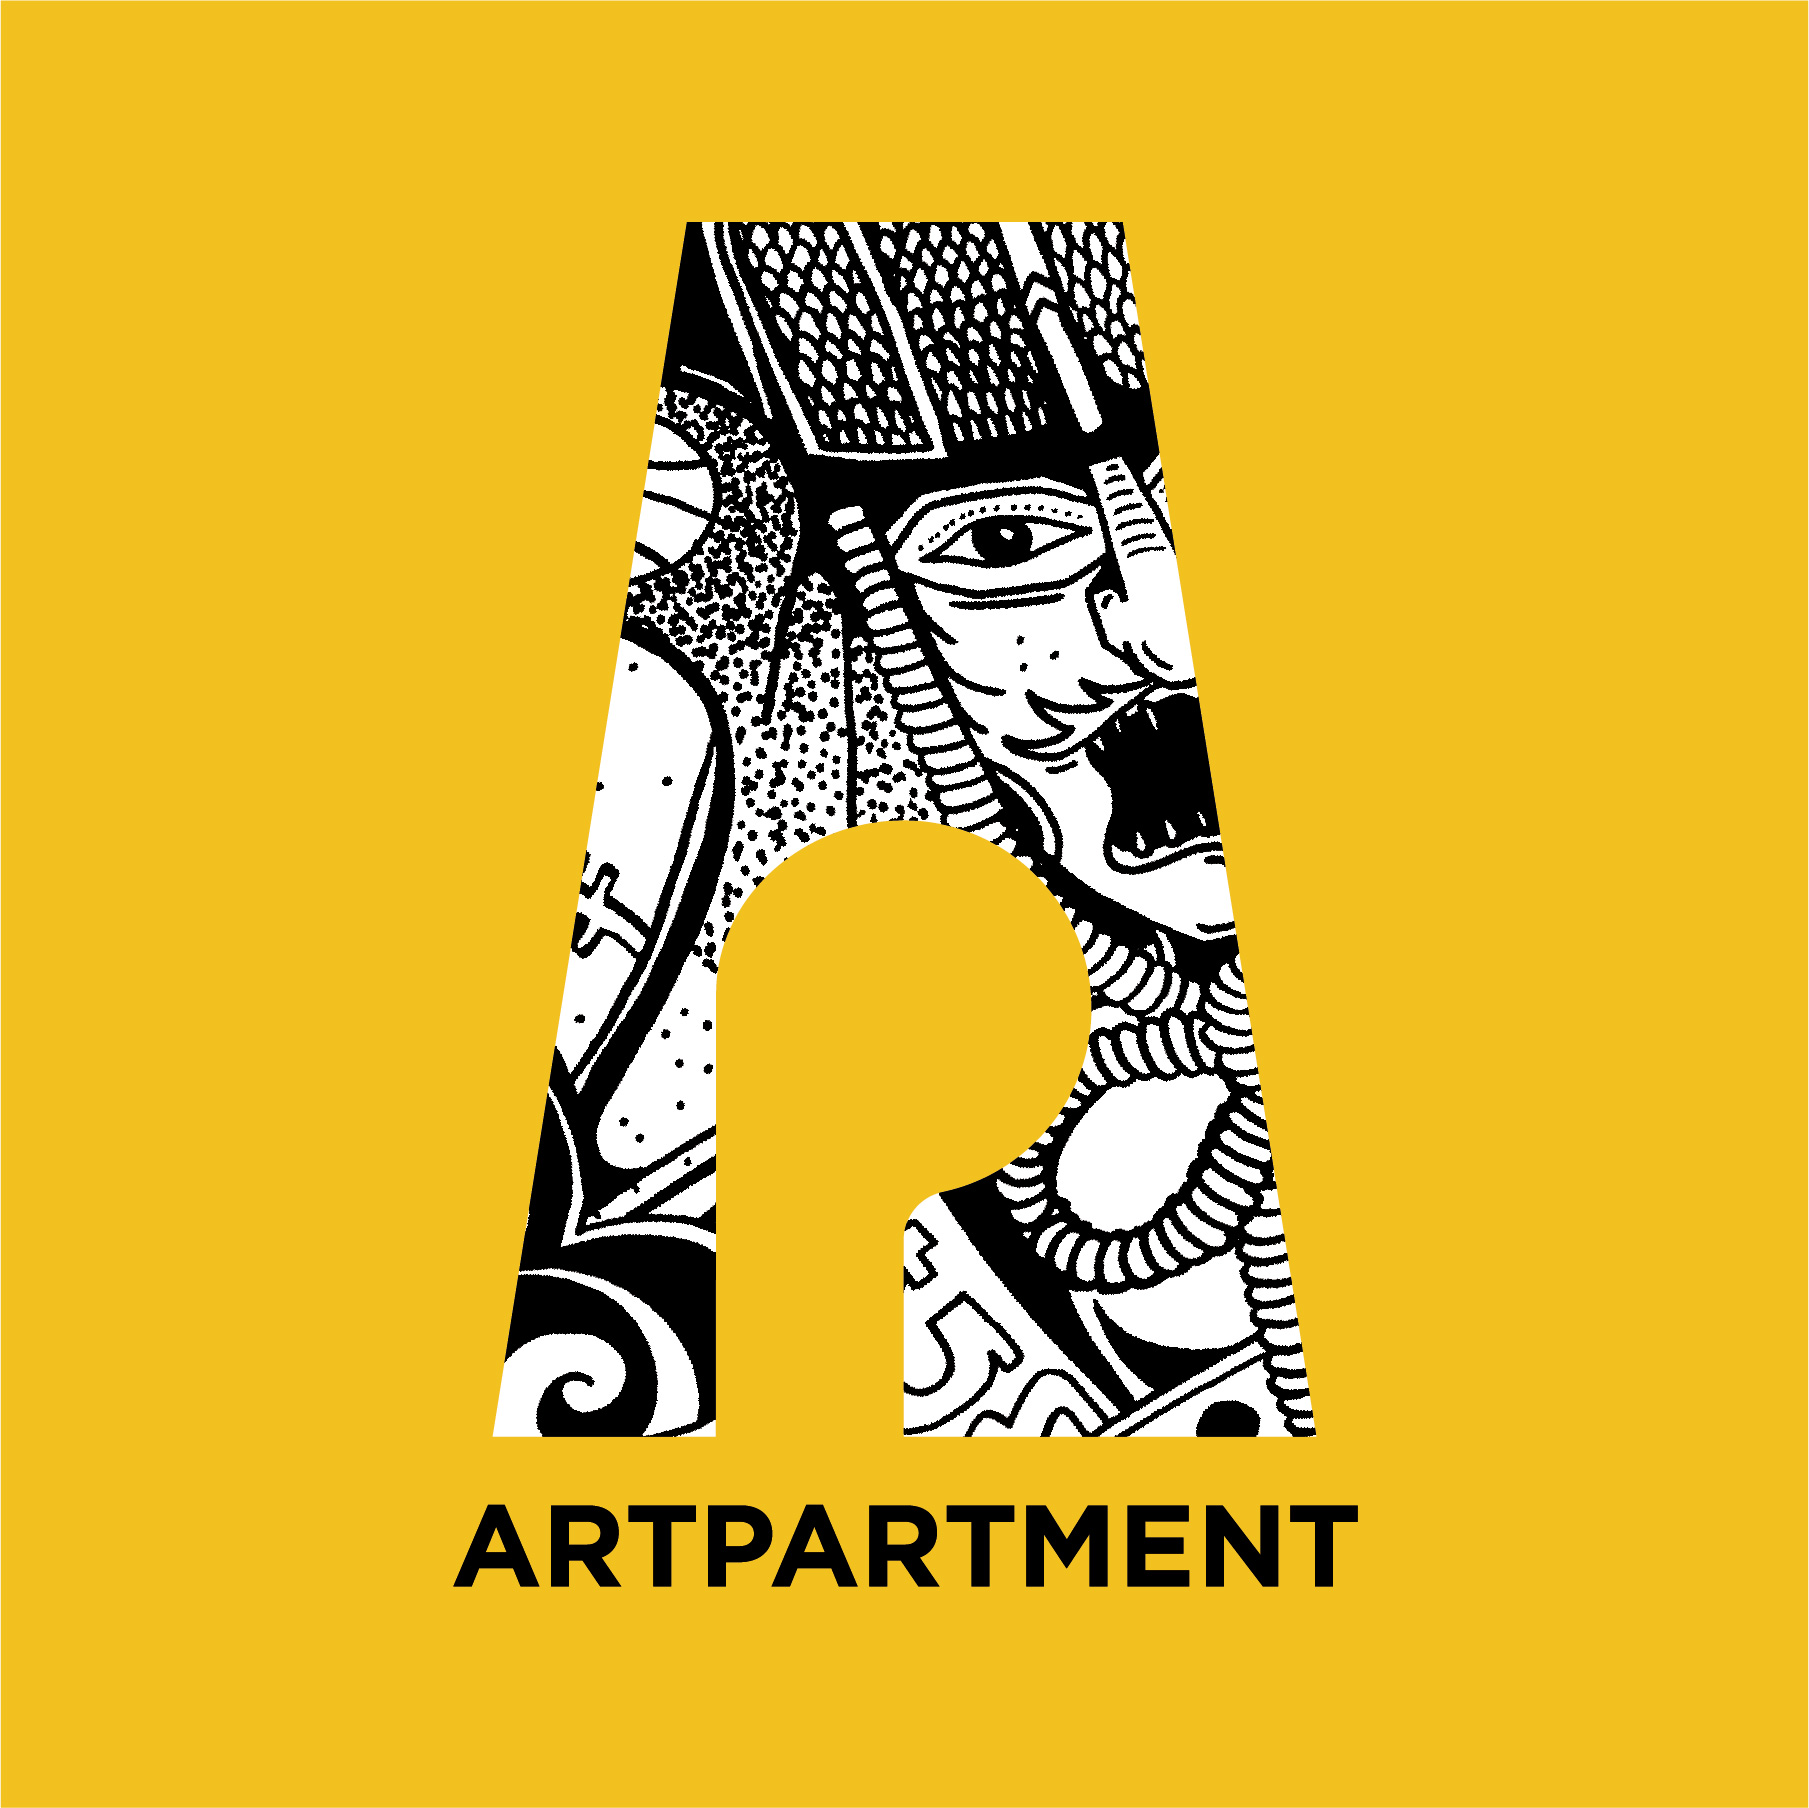 Artpartment.jpg